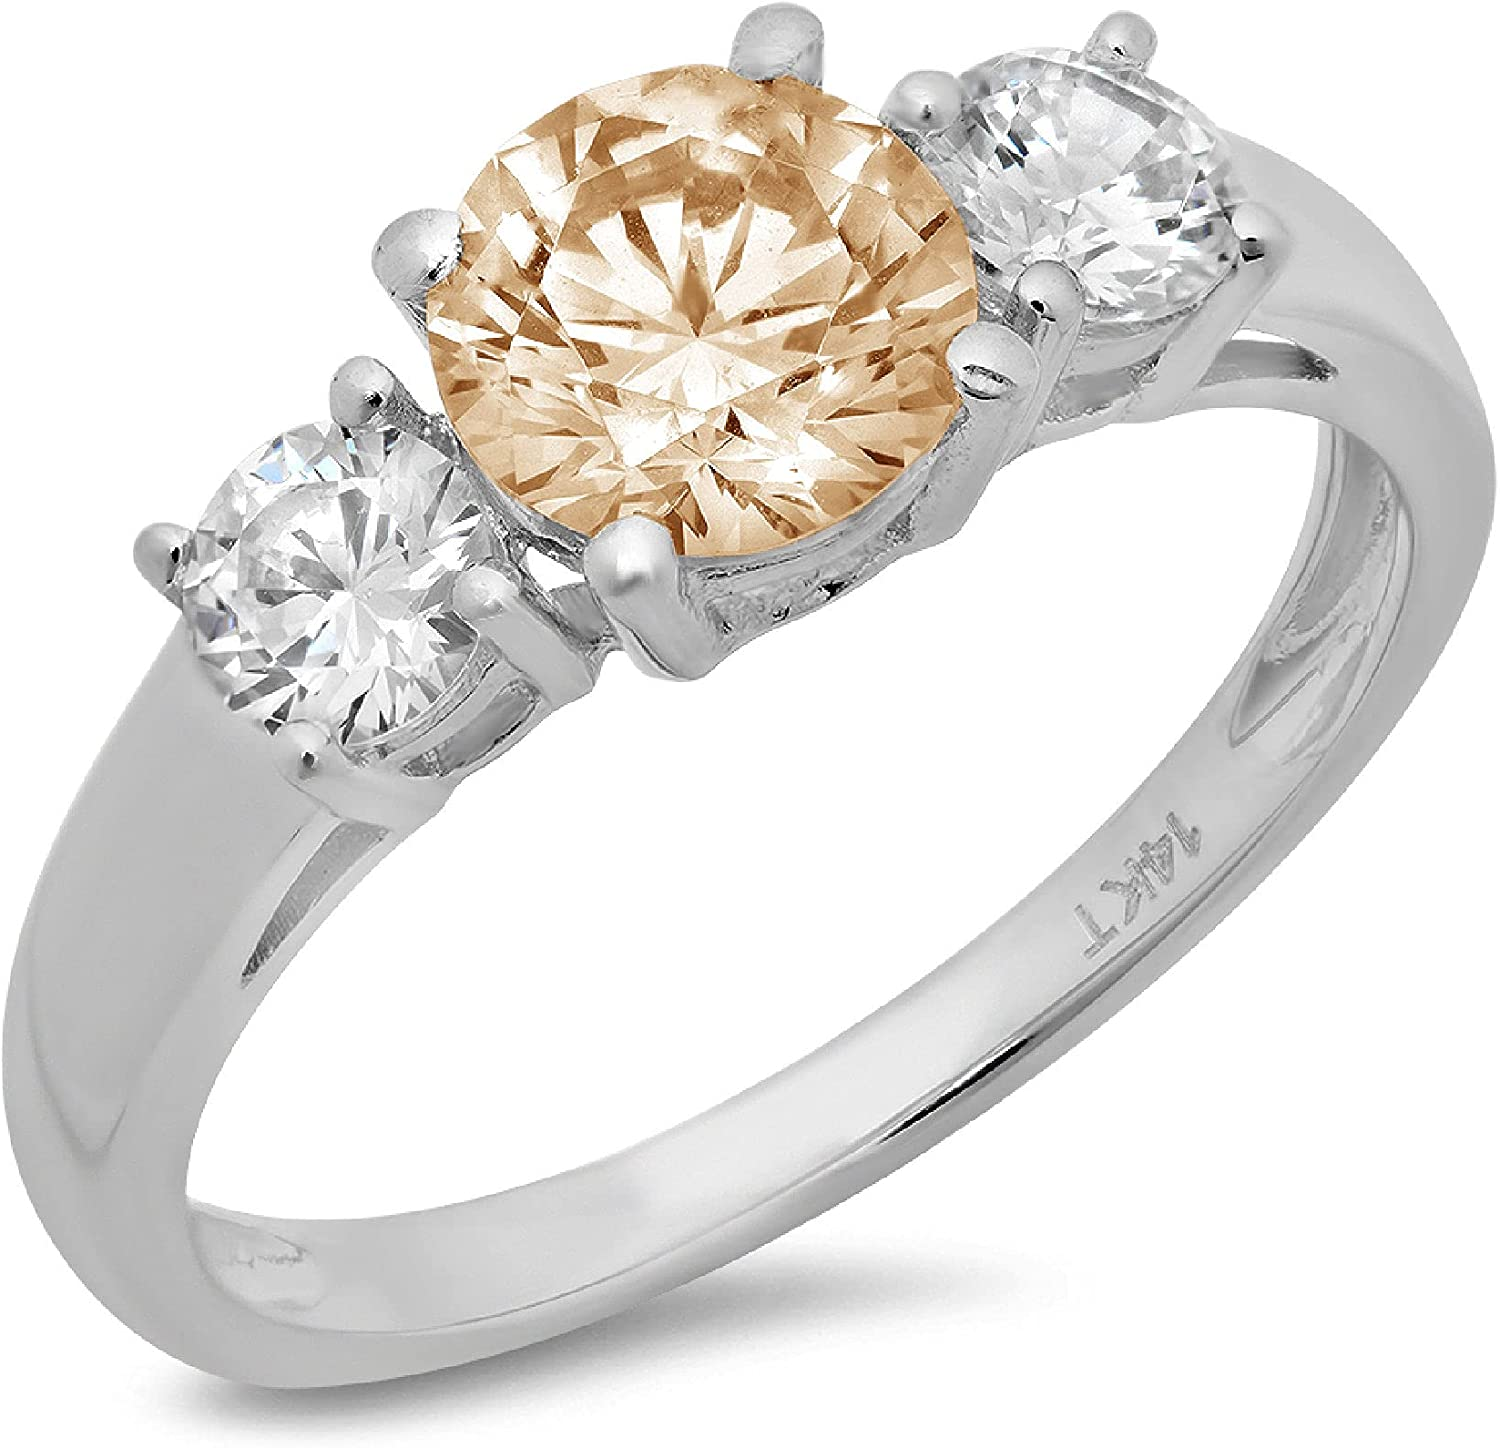 1.50 ct Brilliant Round Cut Solitaire 3 stone Flawless Yellow Moissanite Ideal Engagement Promise Statement Anniversary Bridal Wedding Designer Ring 14k White Gold